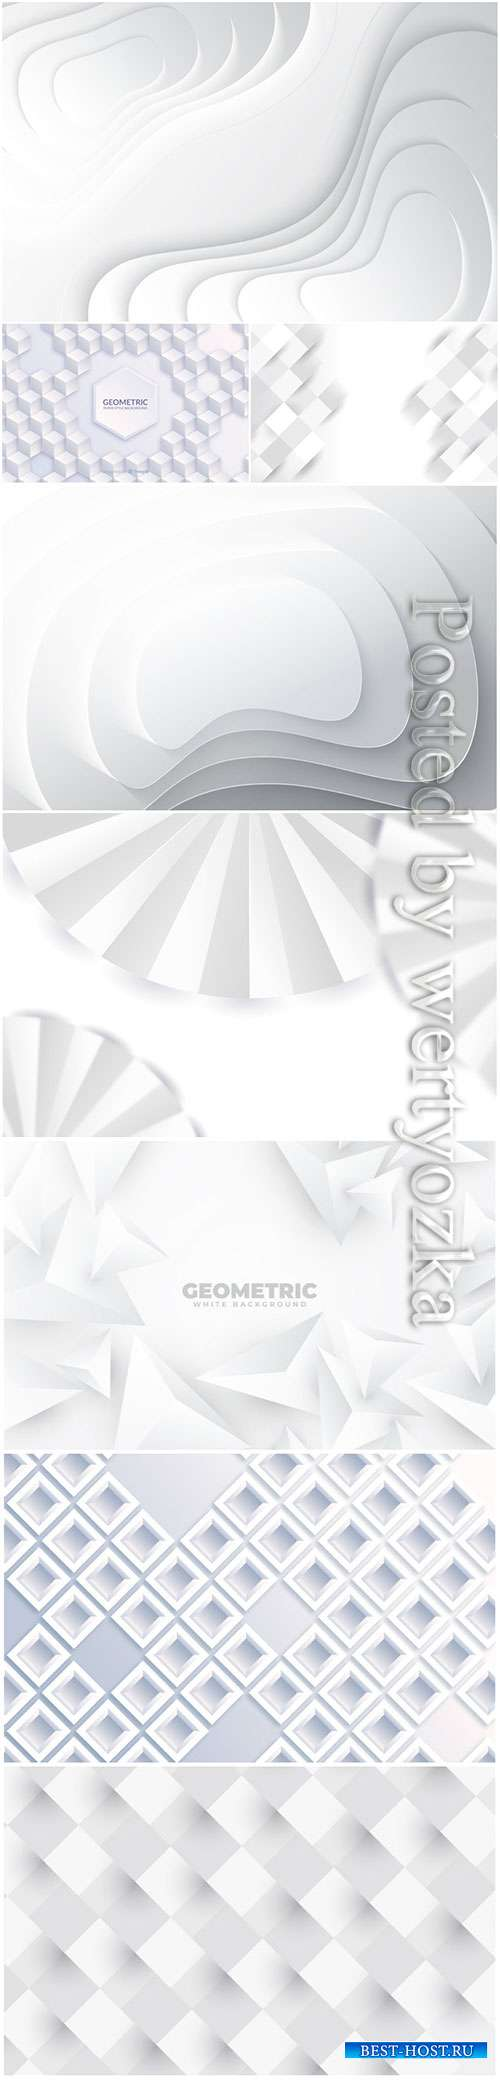 Abstract vector background, 3d models template # 6